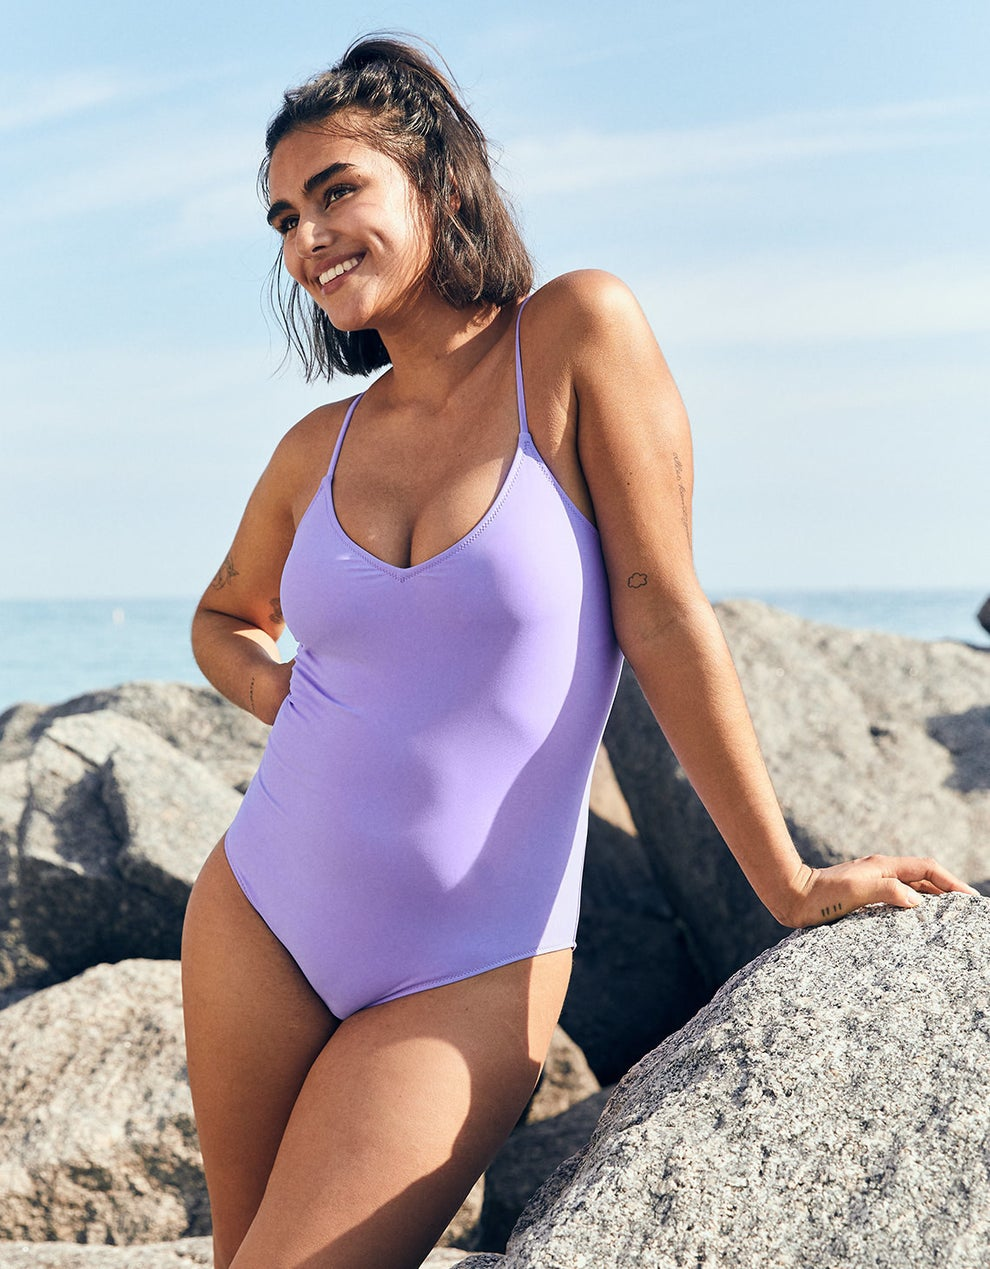 d9dd22bb11f 37 One-Piece Bathing Suits That'll Make You Ditch Your Bikini – cupbord